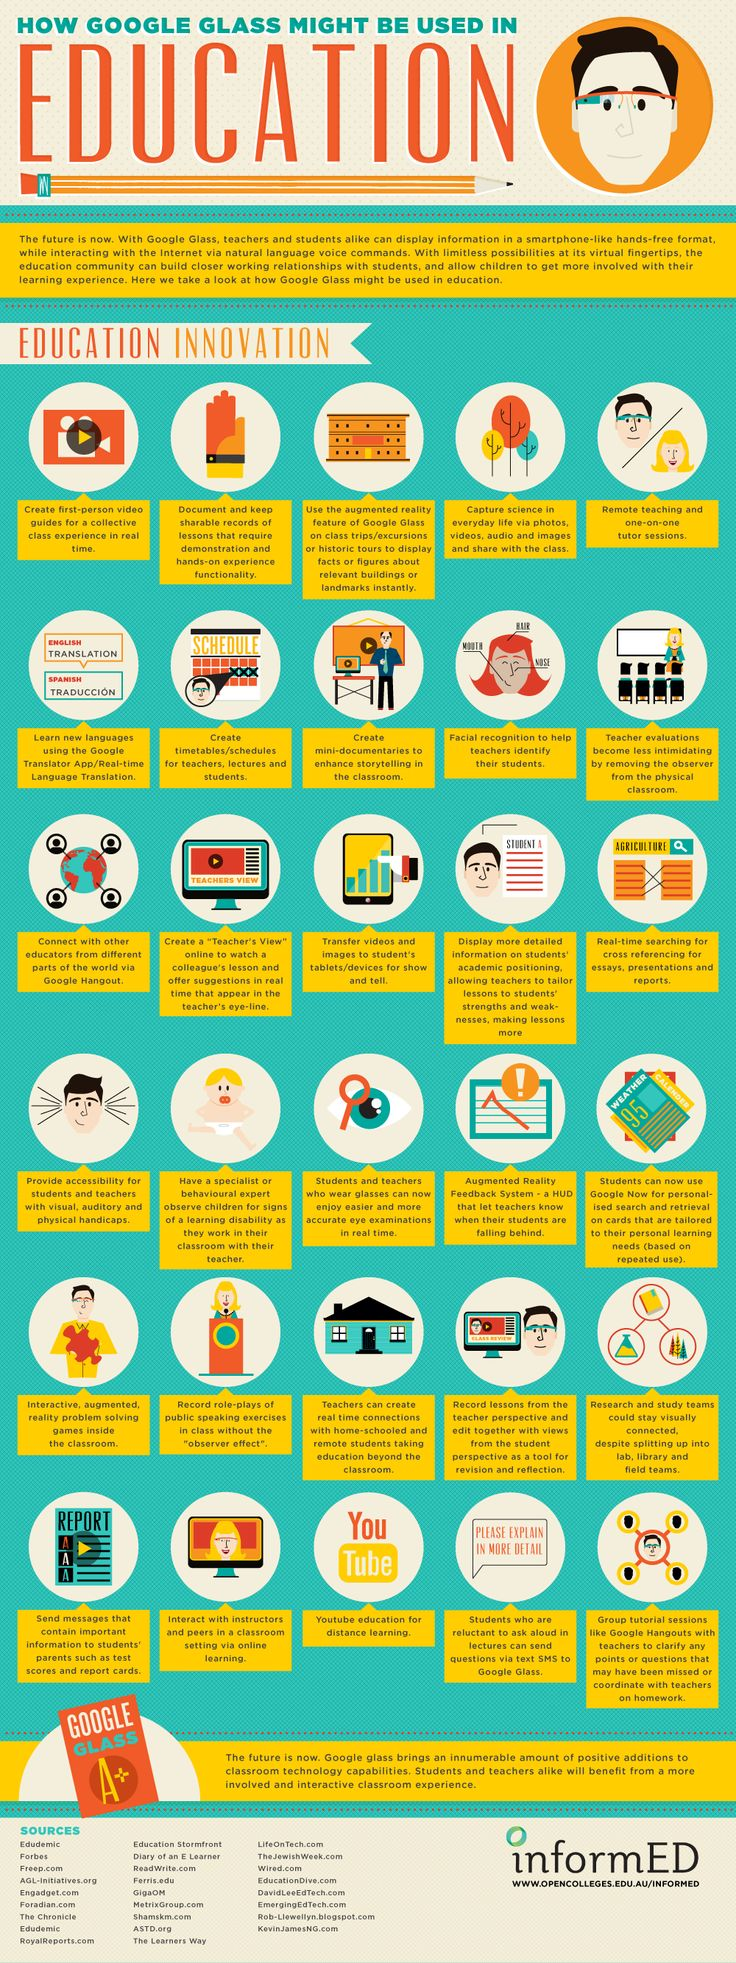 Infographic- Google Glass In Education